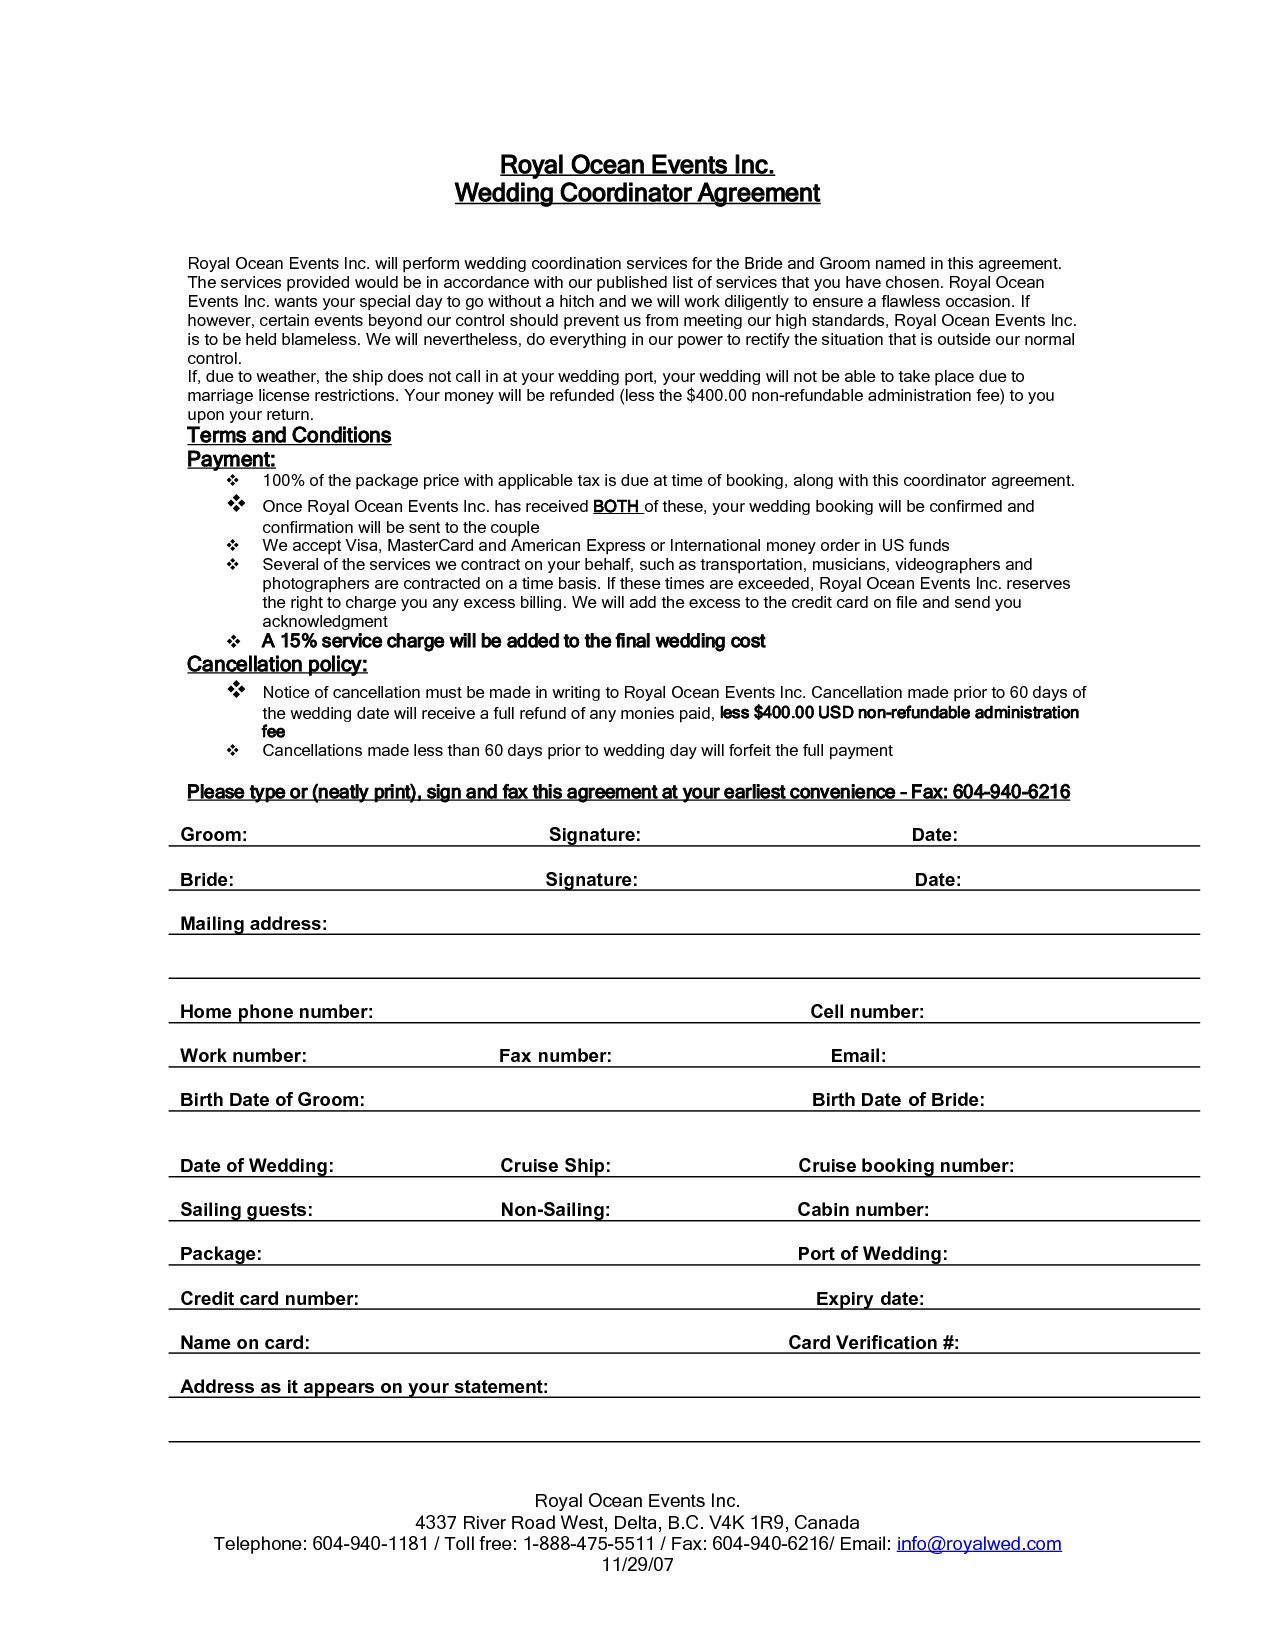 005 Impressive Wedding Planner Contract Template Picture  Word Planning Coordinator FreeFull